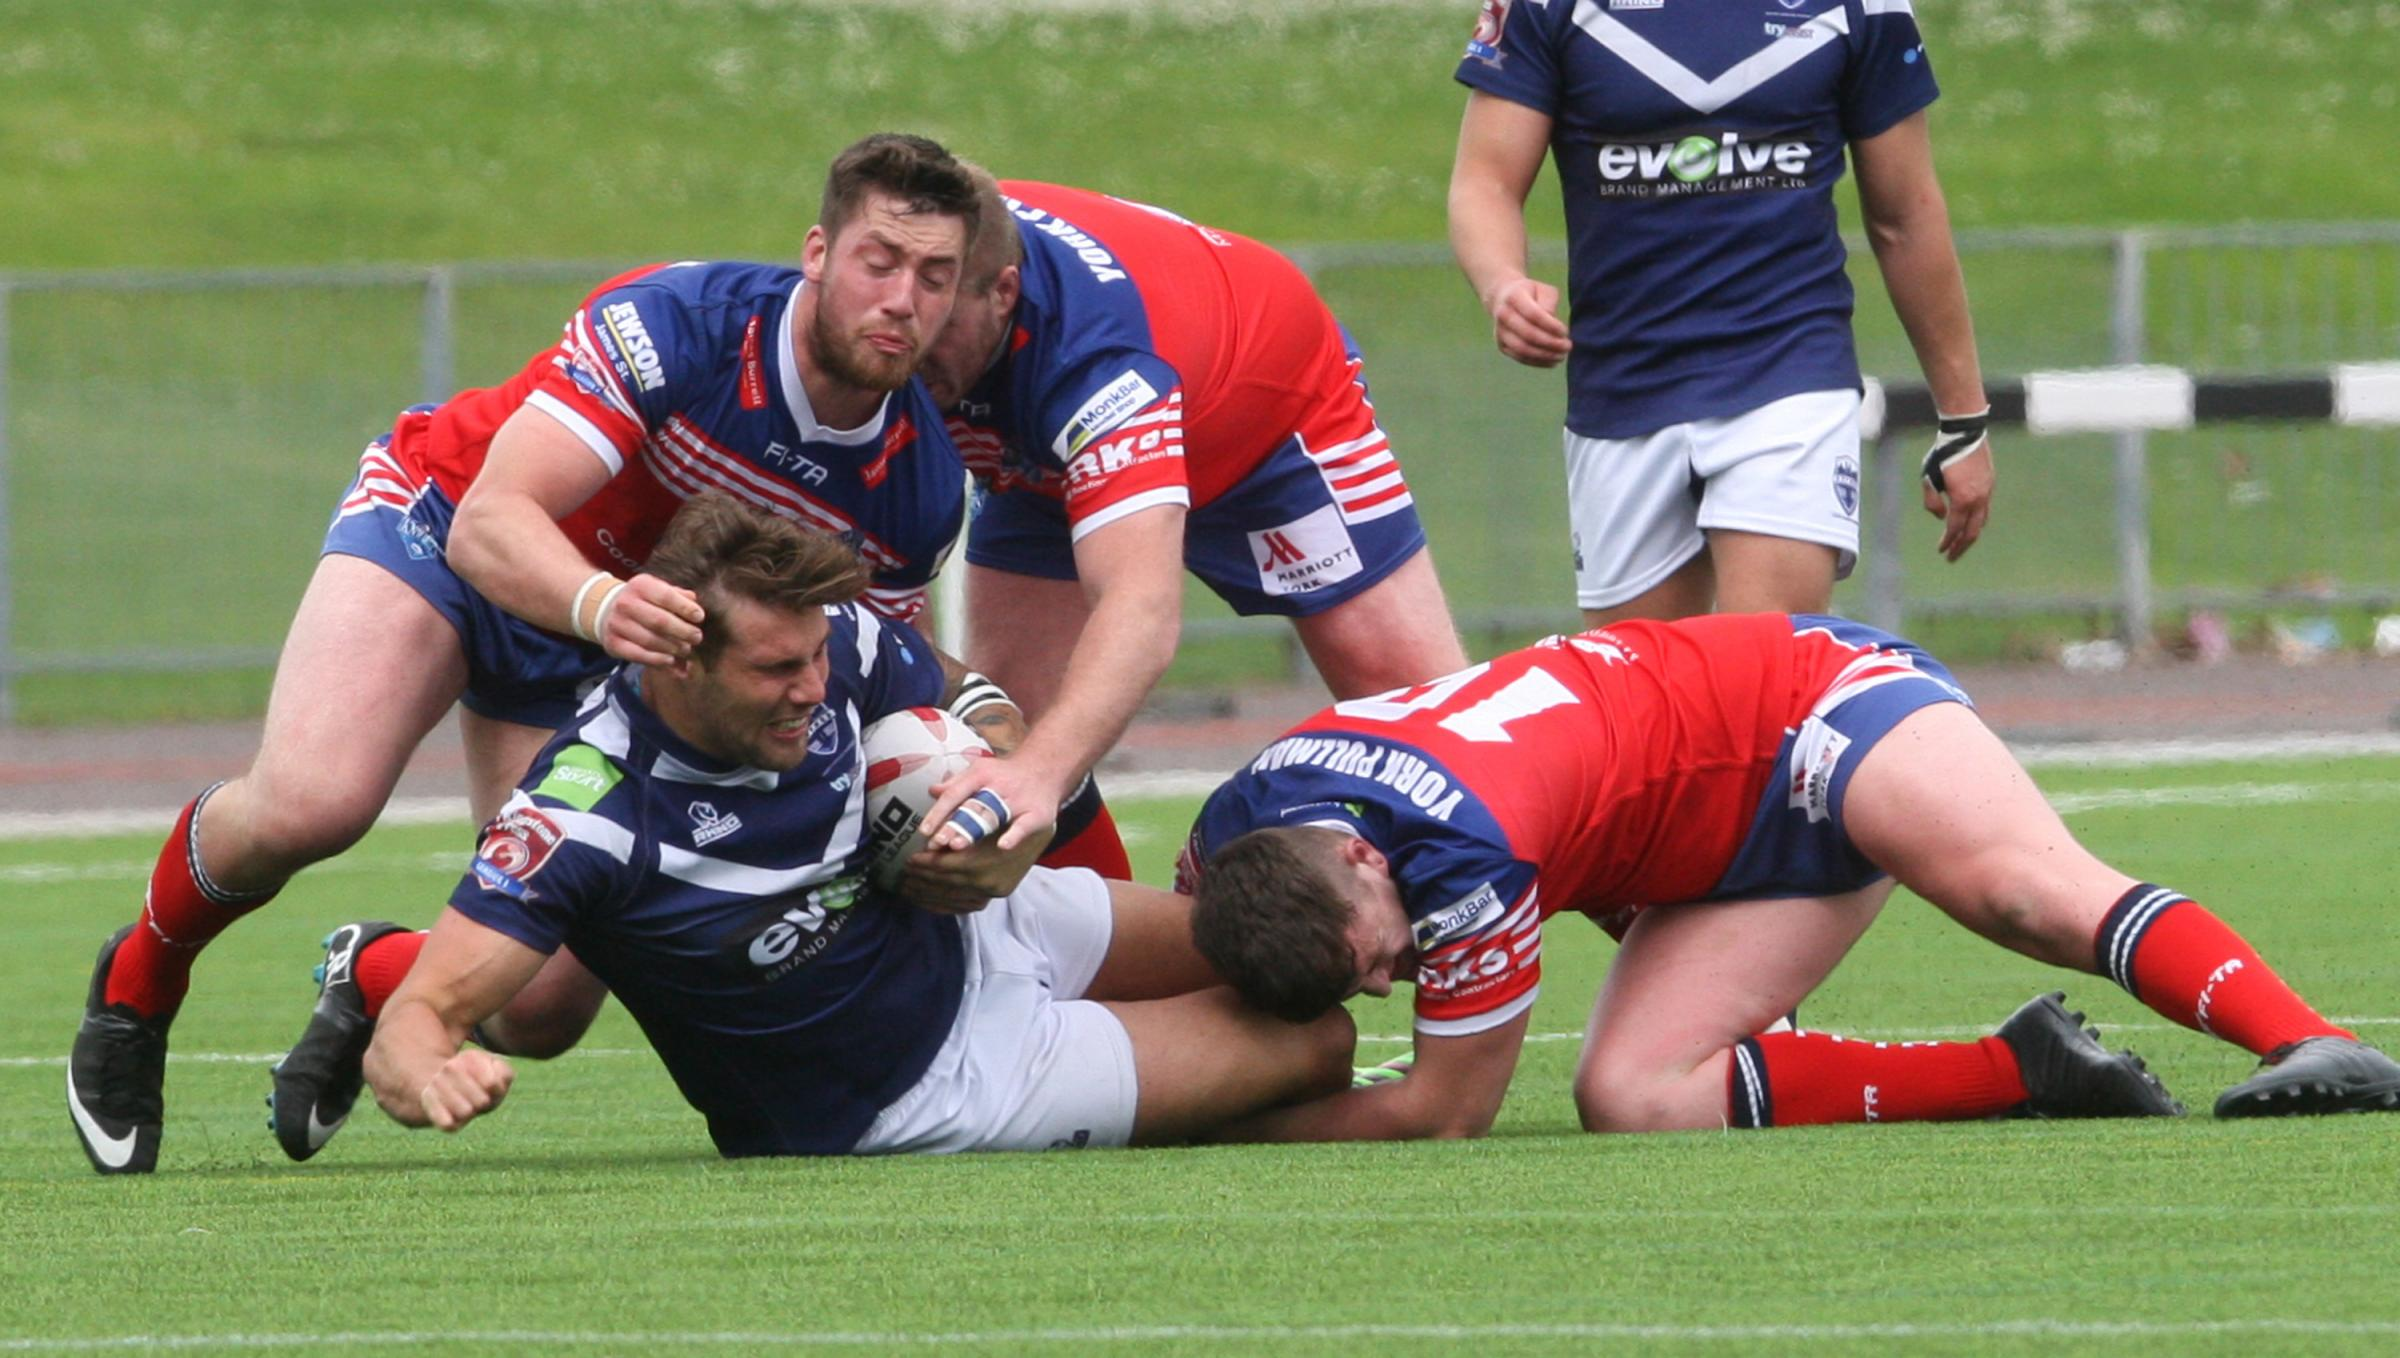 Oxford RL's Aaron Nicholson finds himself surrounded by three York City Knights tacklers Picture: Steve Wheeler